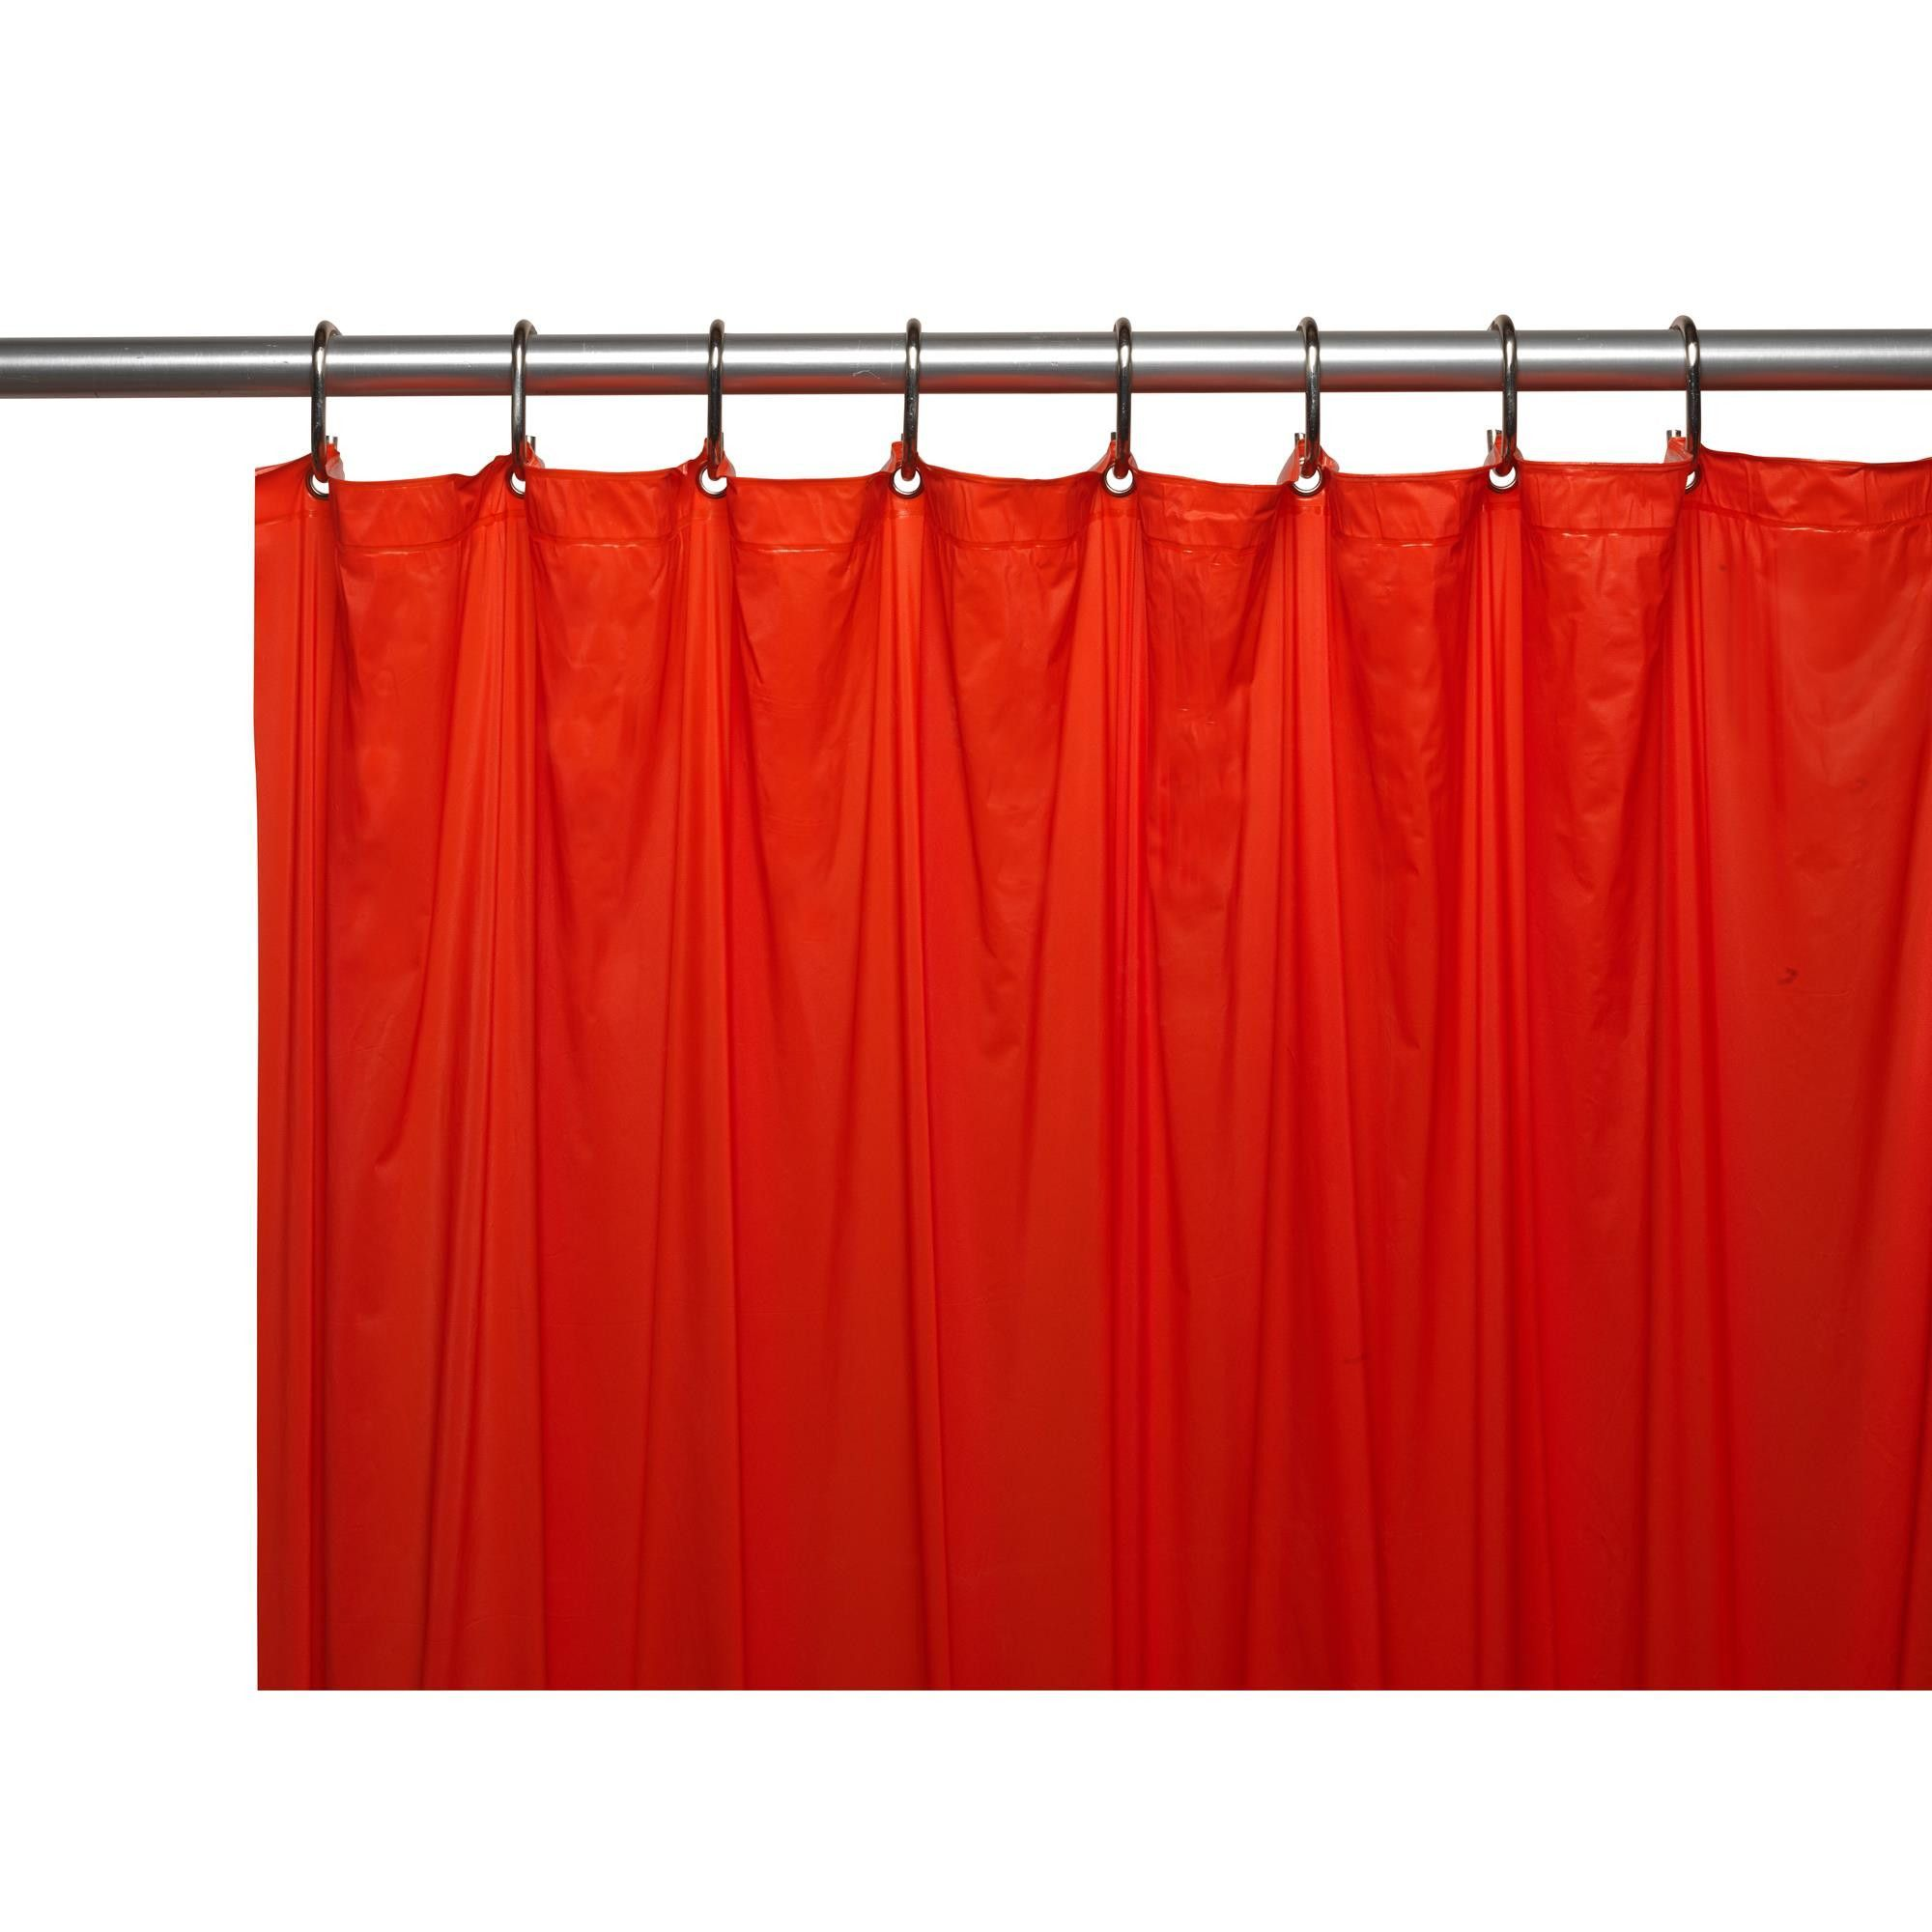 Carnation Home 3 Gauge Vinyl Shower Curtain Liner W Weighted Magnets And Metal Grommets In